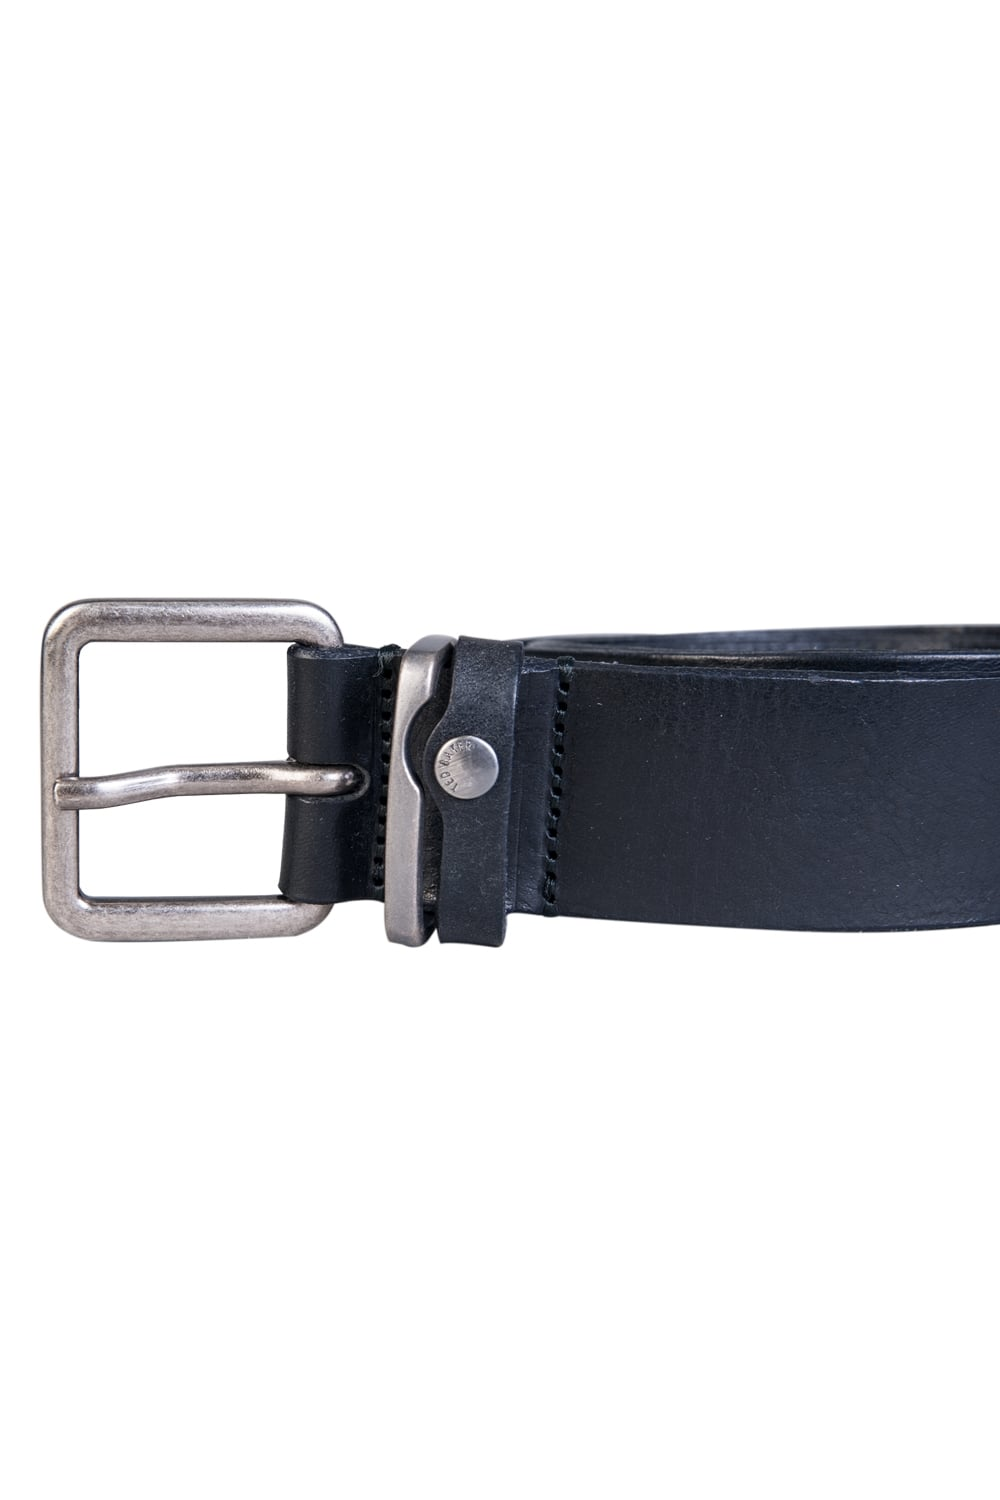 55718c97f53c Ted Baker Belt XH77 KATCHUP 00 - Accessories from Sage Clothing UK